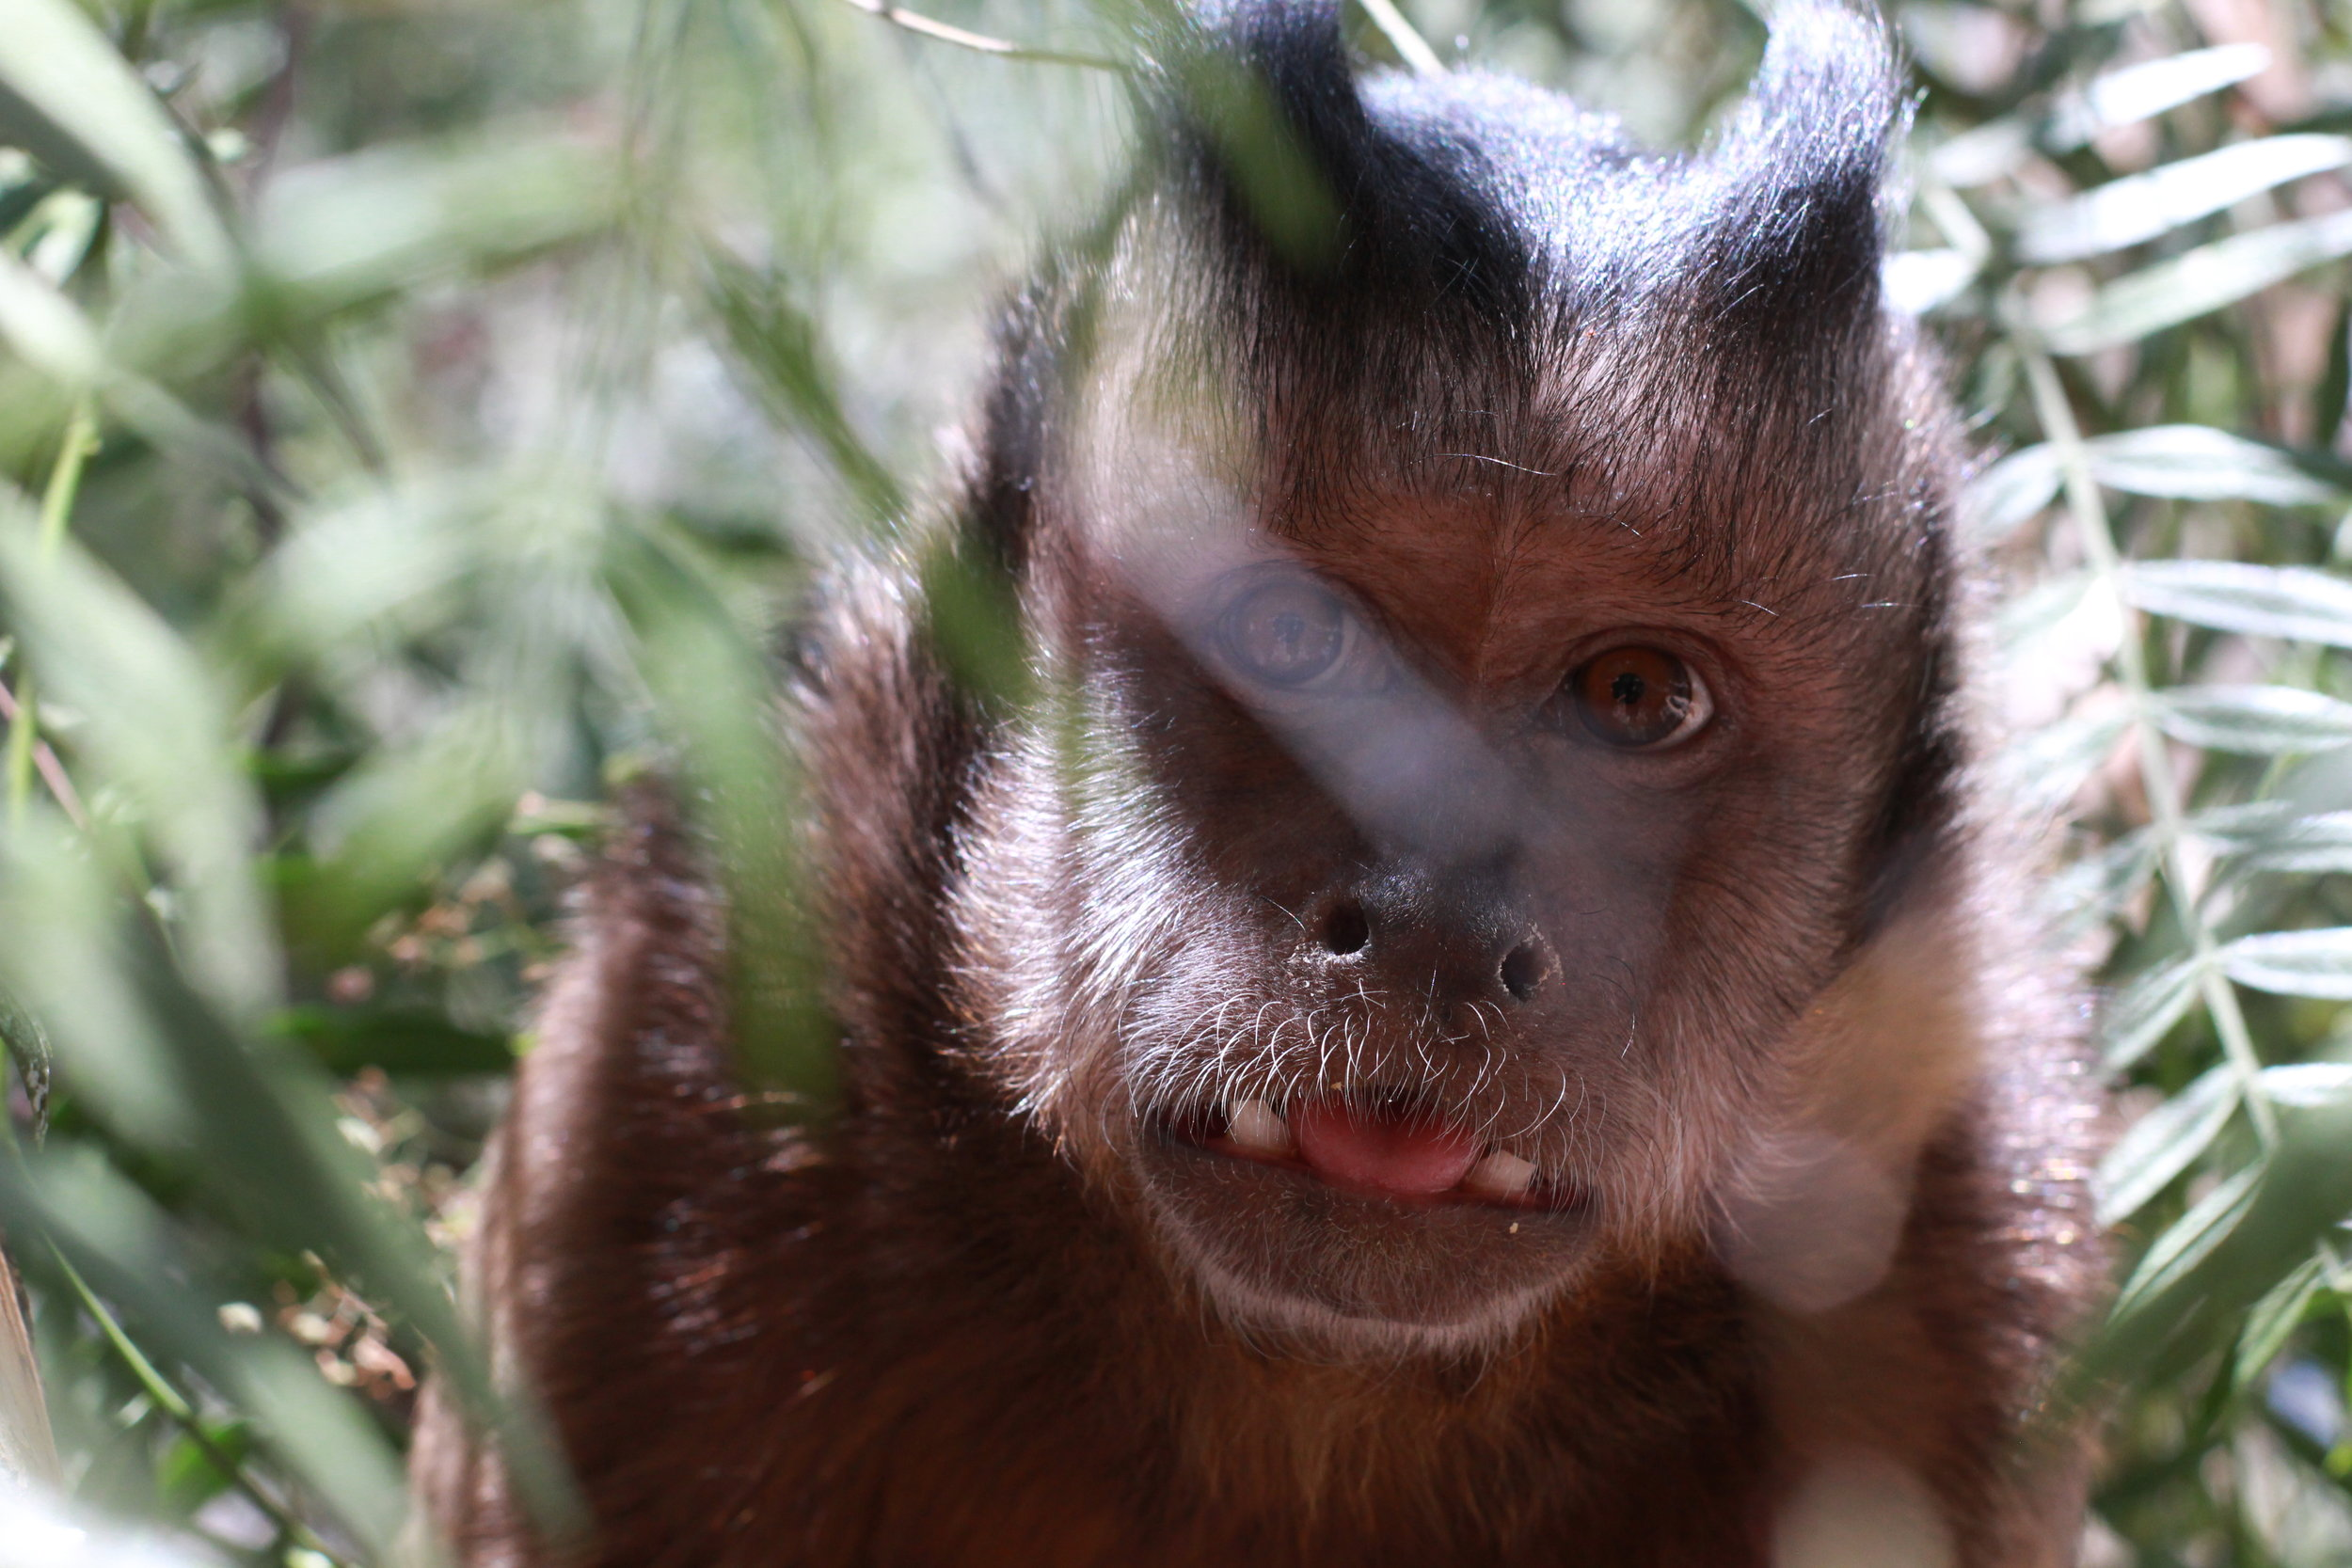 Marley is one of our resident Capuchin Monkeys